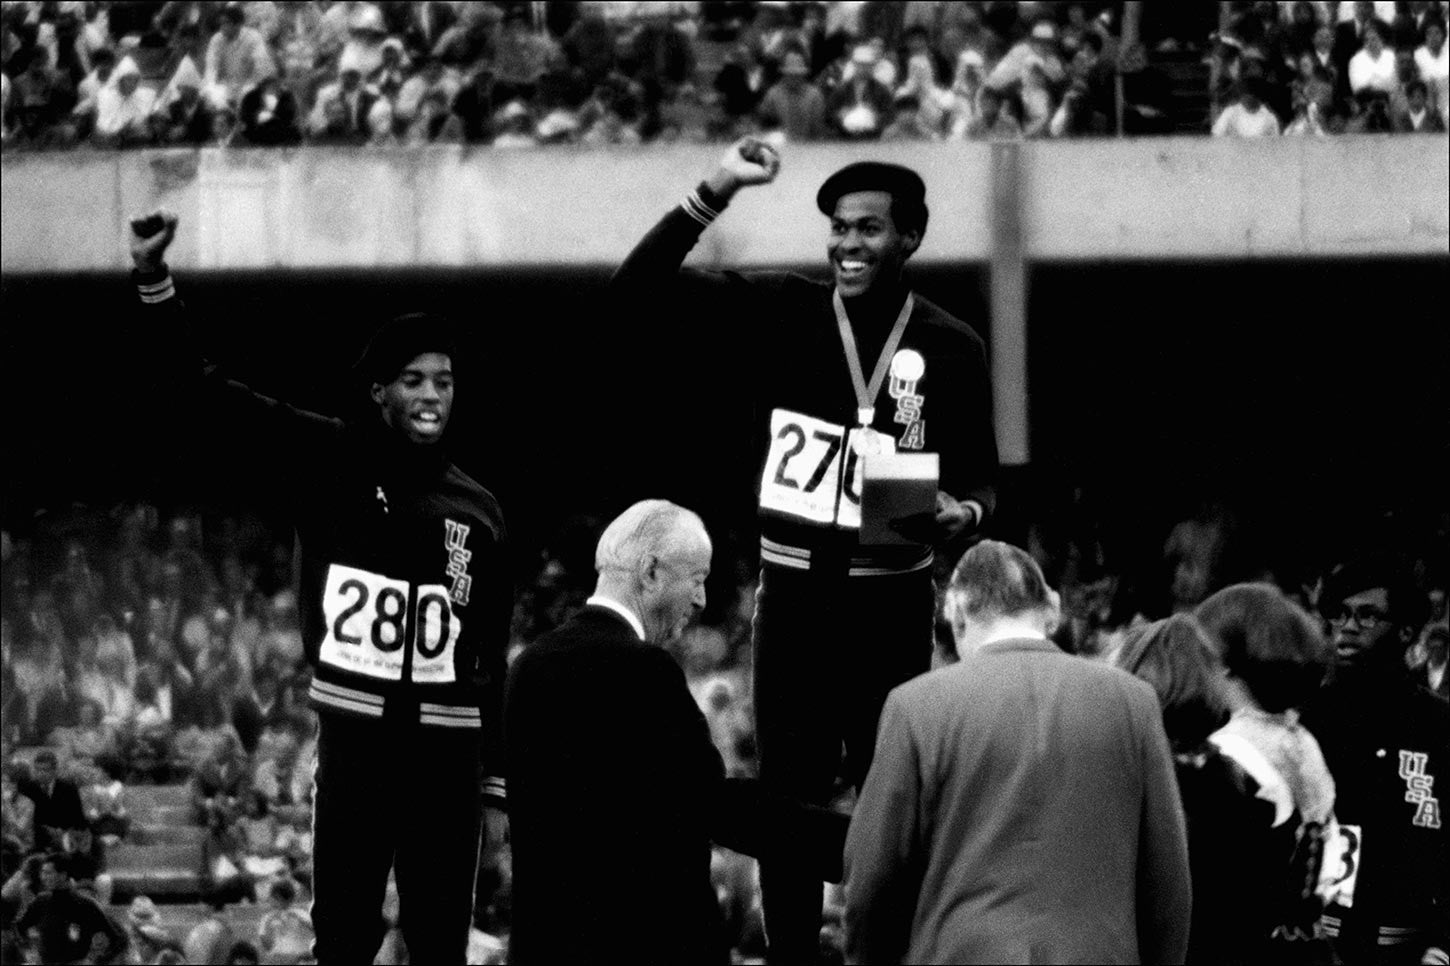 Athletes Larry James, Lee Evans and Ron Freeman clutching their fists on the podium at the 1968 Olympic Games.